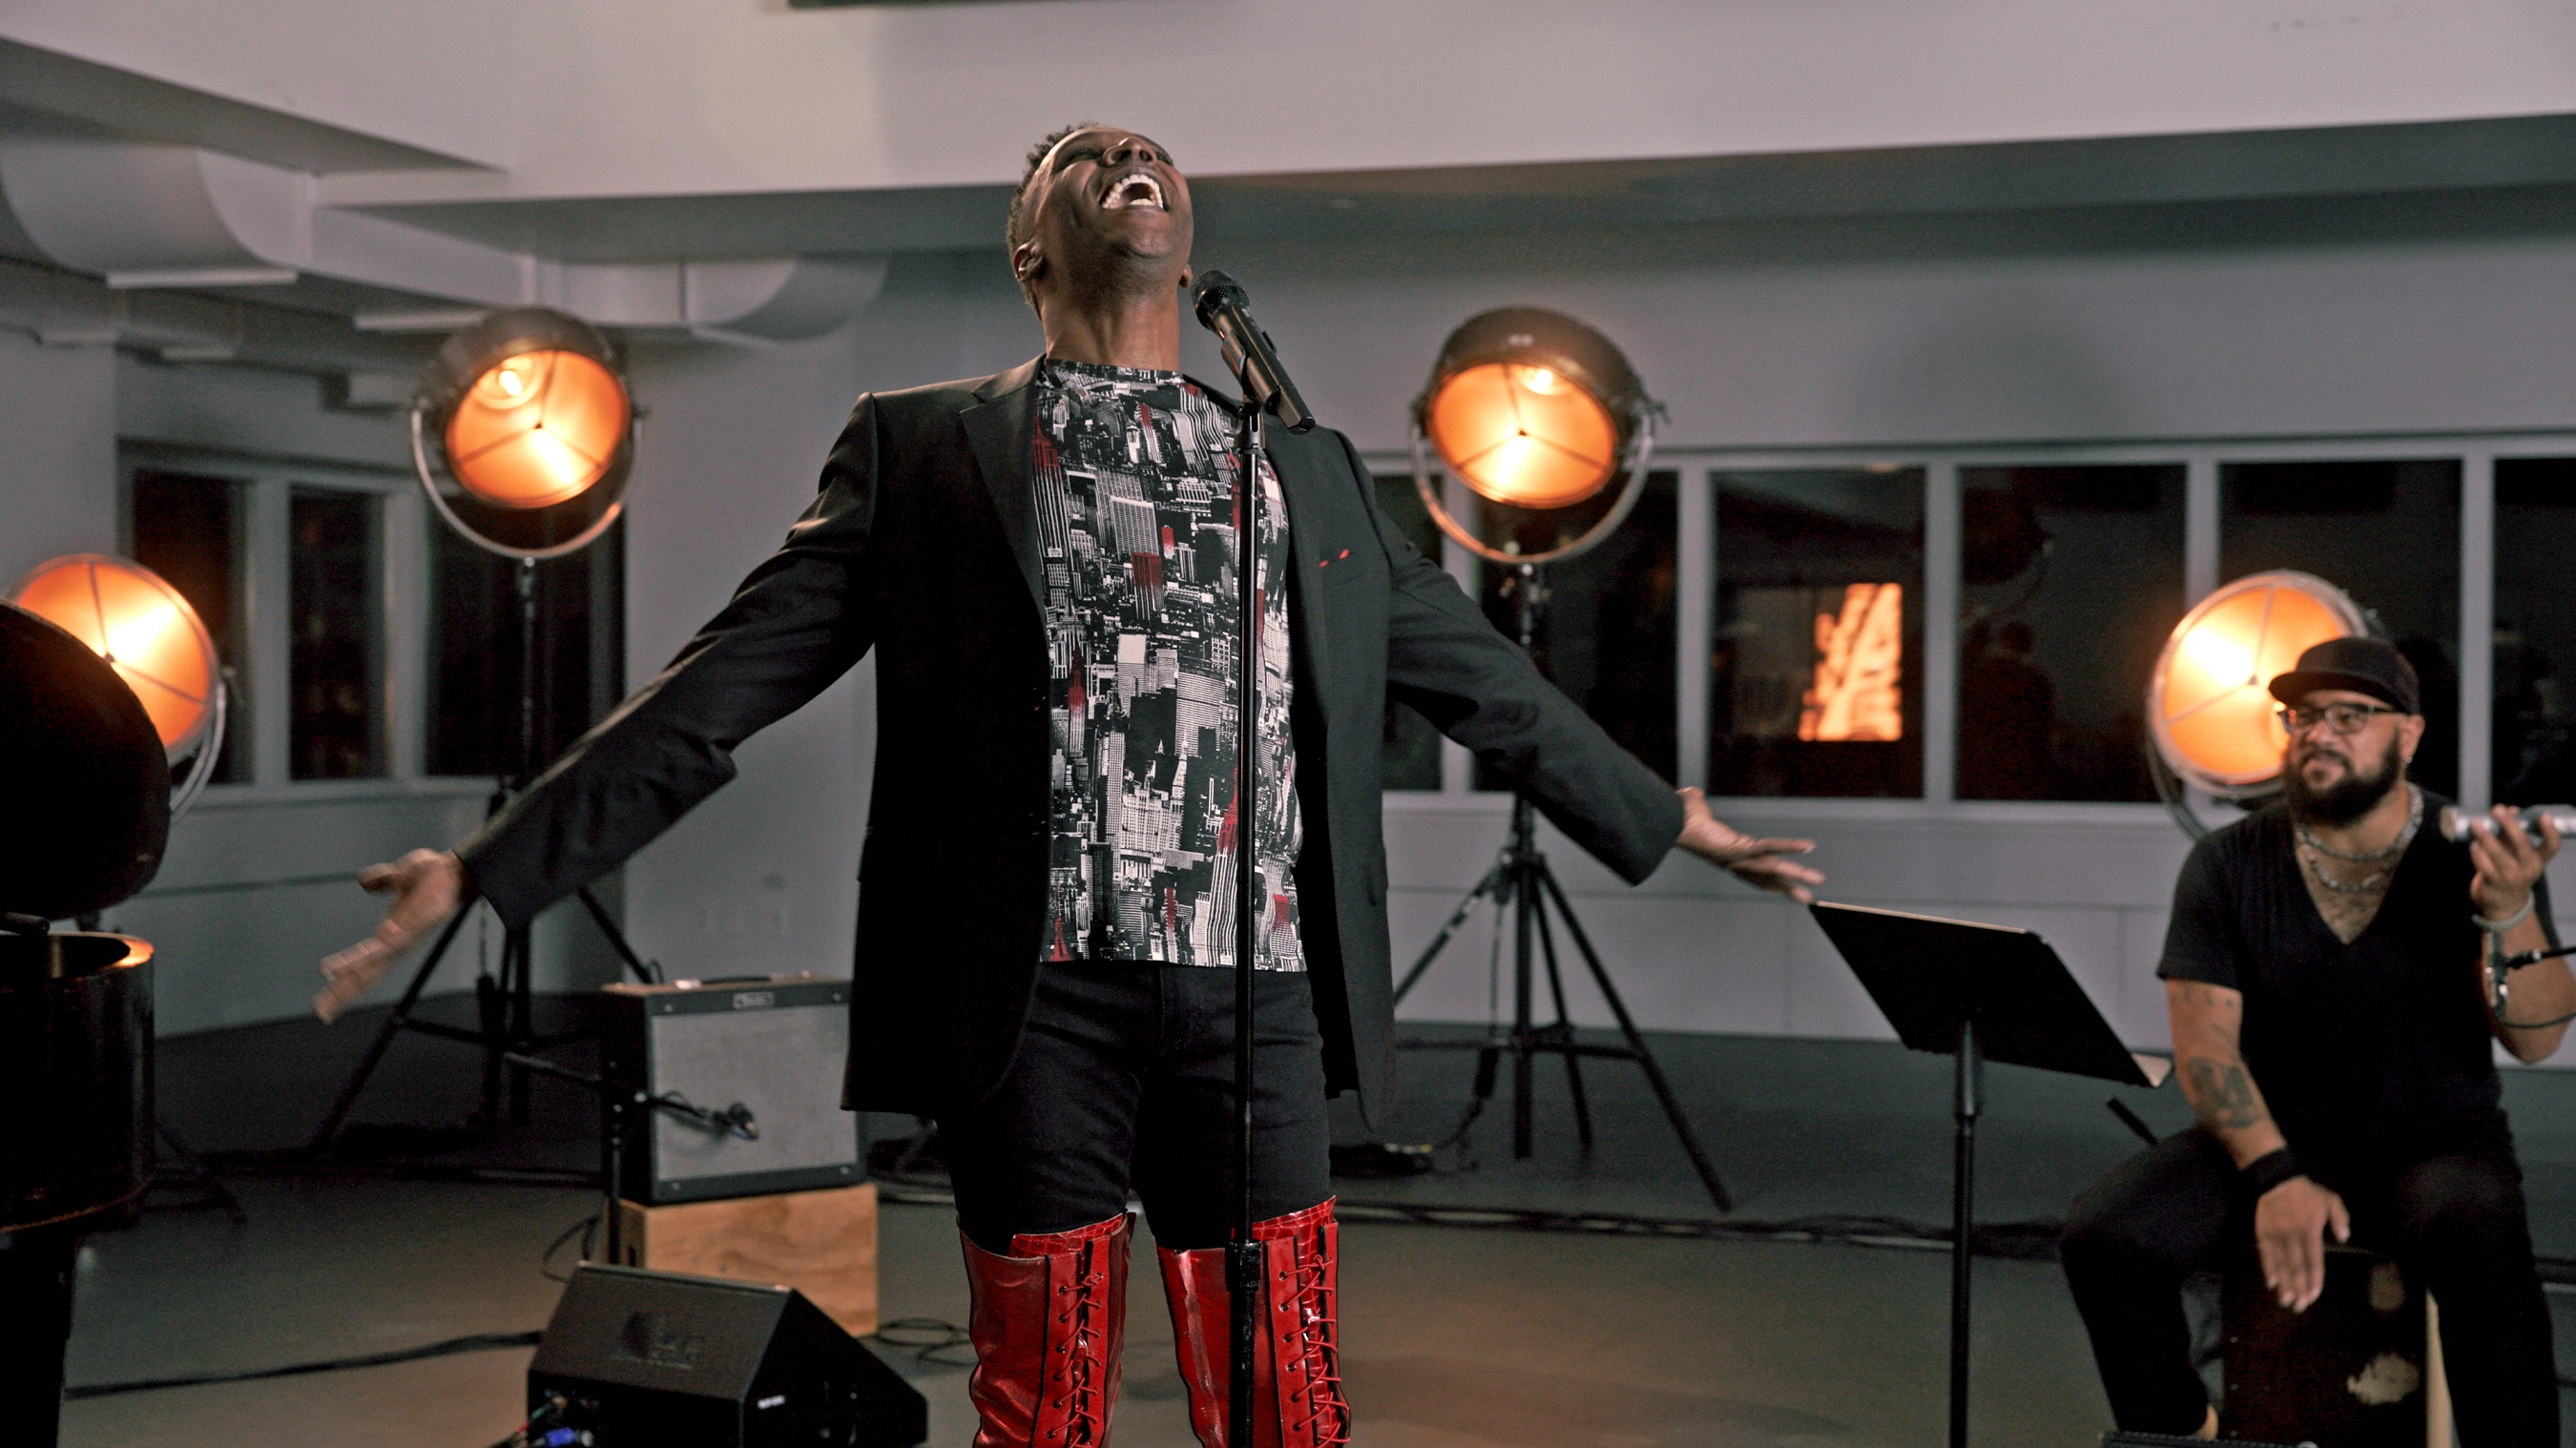 """Norwegian Cruise Line presents the second """"EMBARK NCL Spotlight"""" episode, """"Live From Broadway,"""" on Dec. 17 at 9 p.m. ET with special performances, including Alan Mingo singing """"Land of Lola"""" from the Tony Award®-winning musical """"Kinky Boots"""" available on Norwegian Encore."""